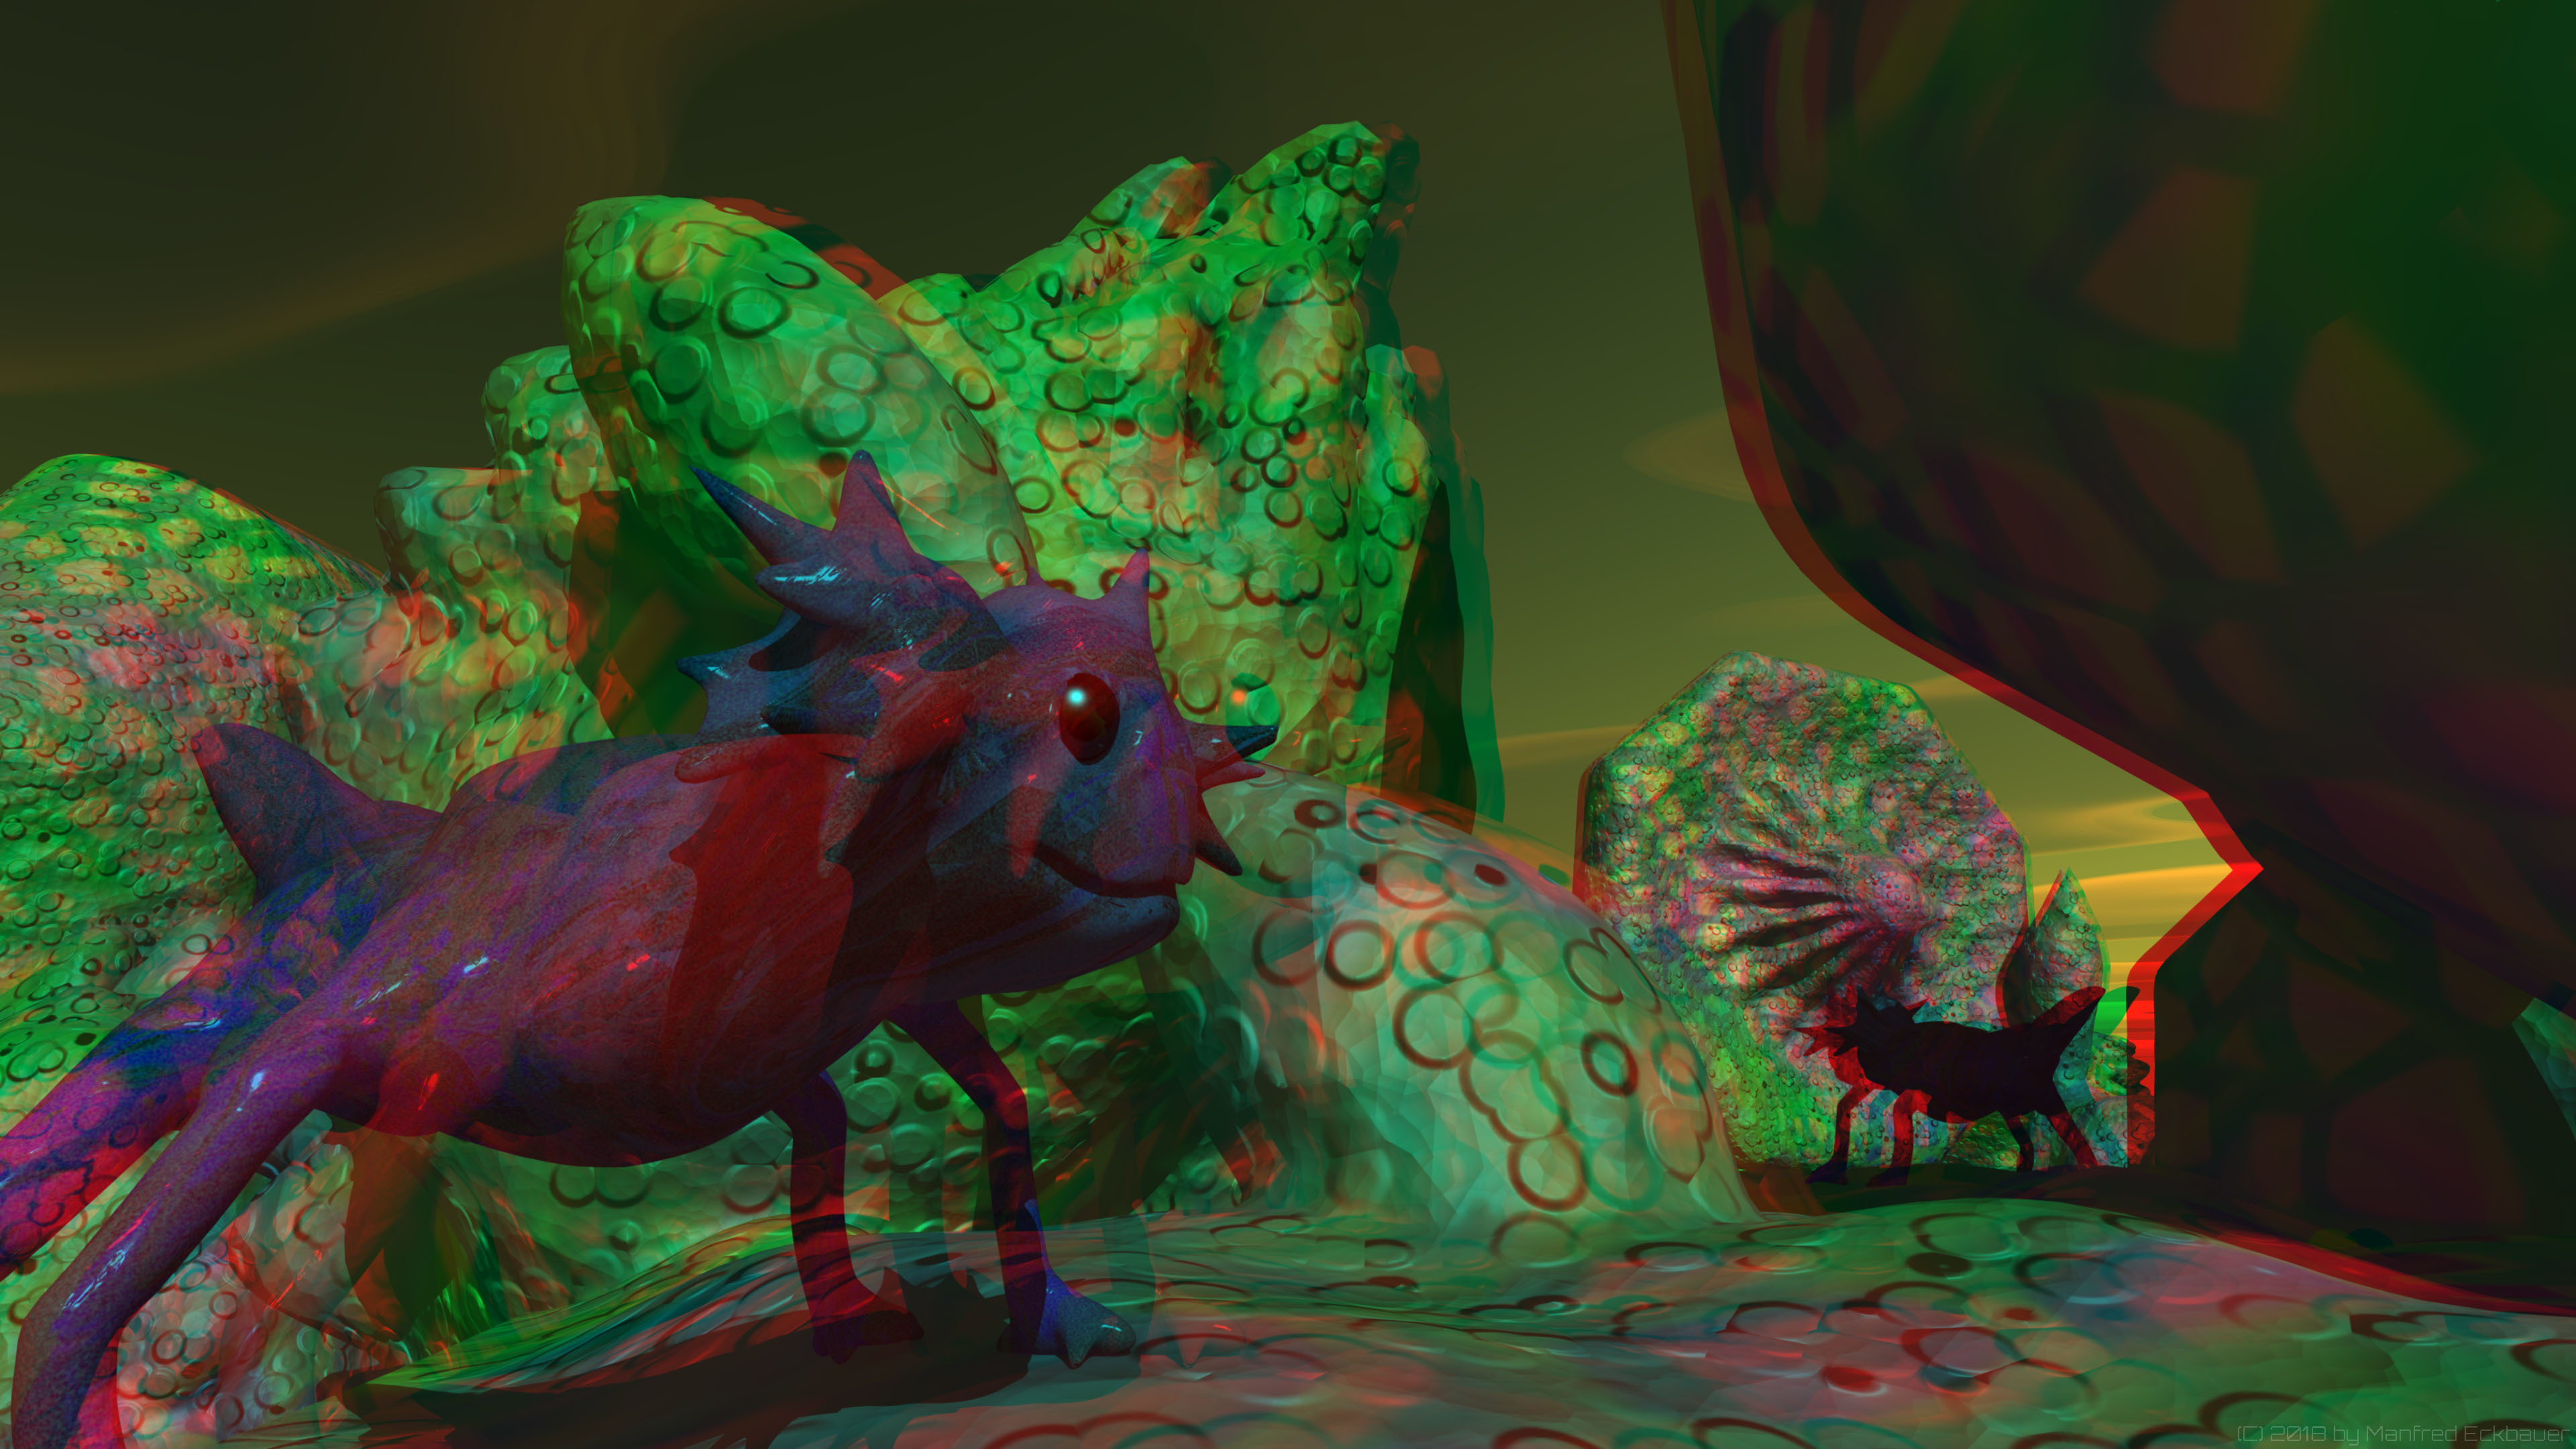 Anaglyph Creature 3D (use red/green glasses)